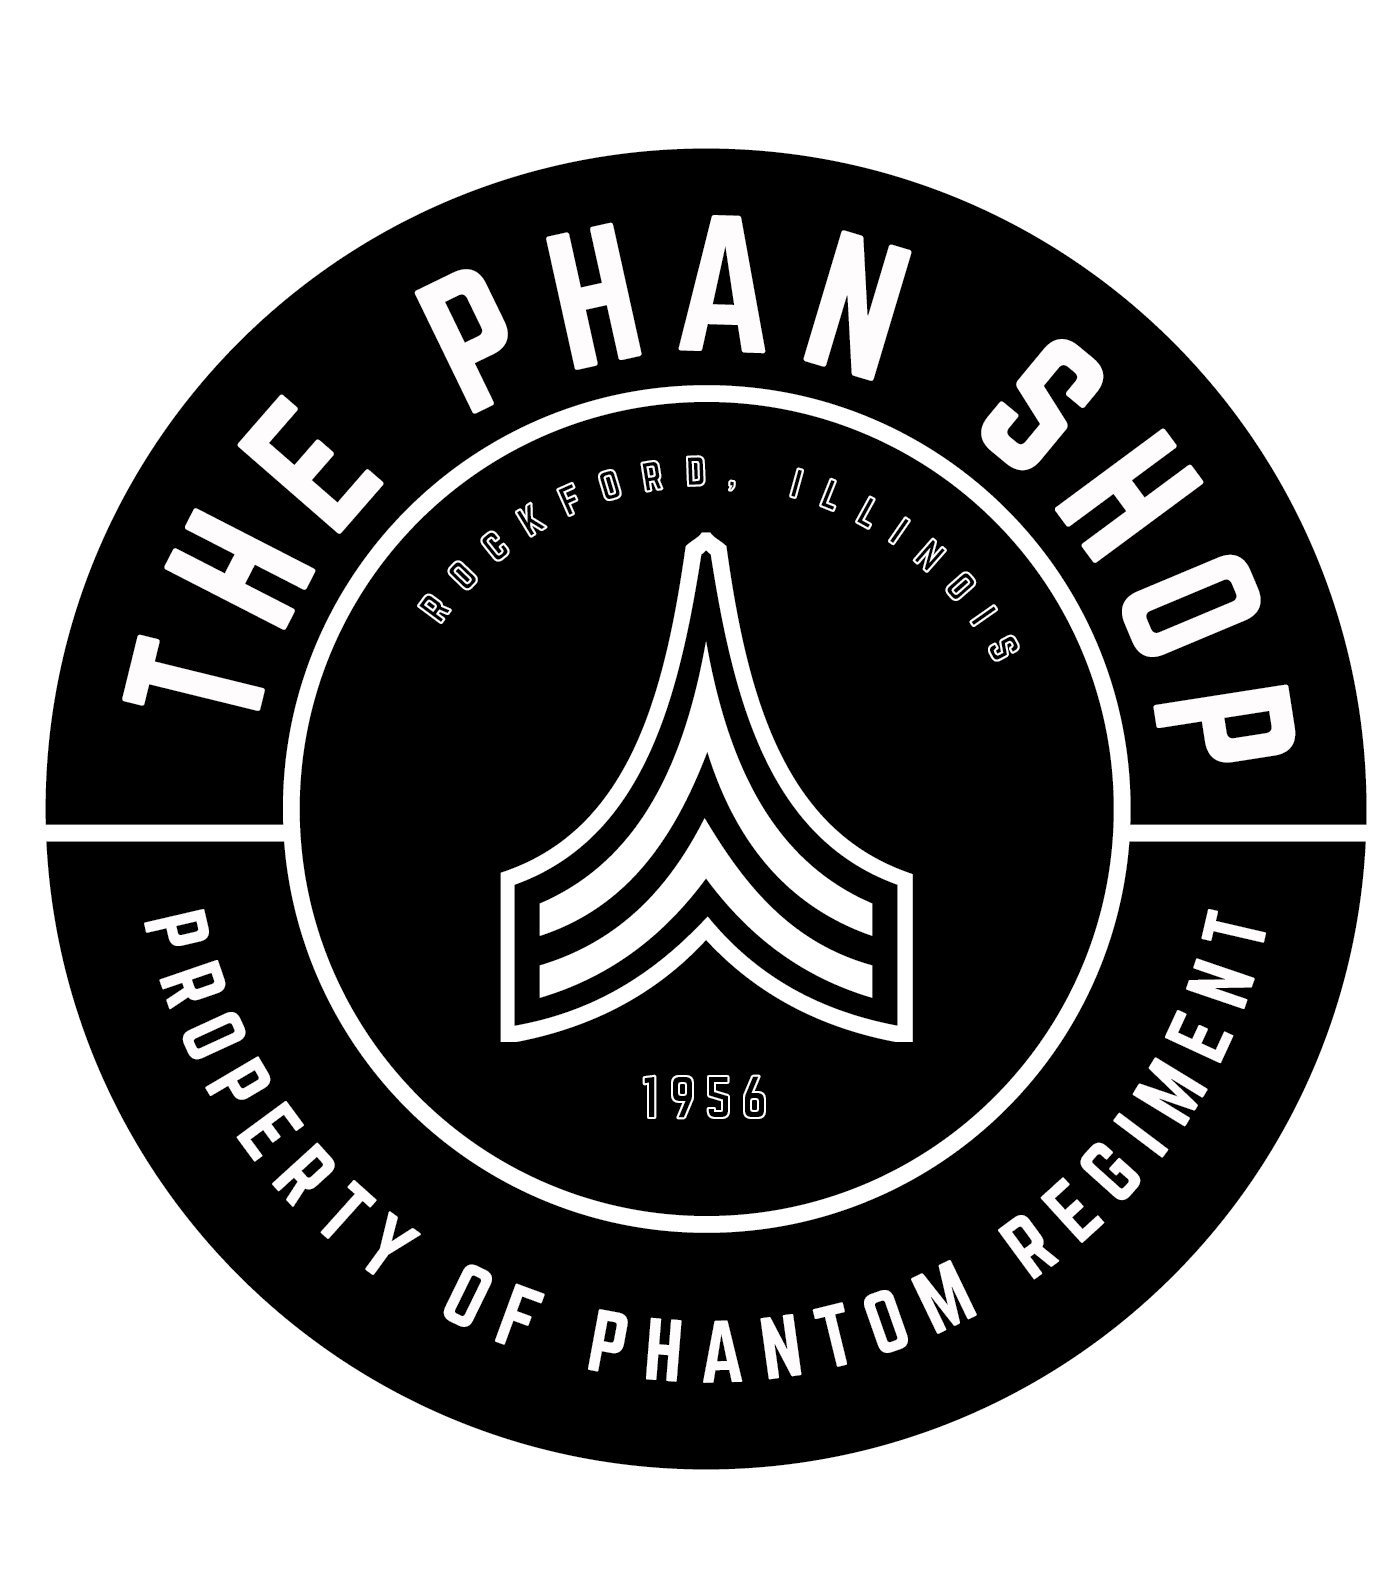 The Phan Shop Logo